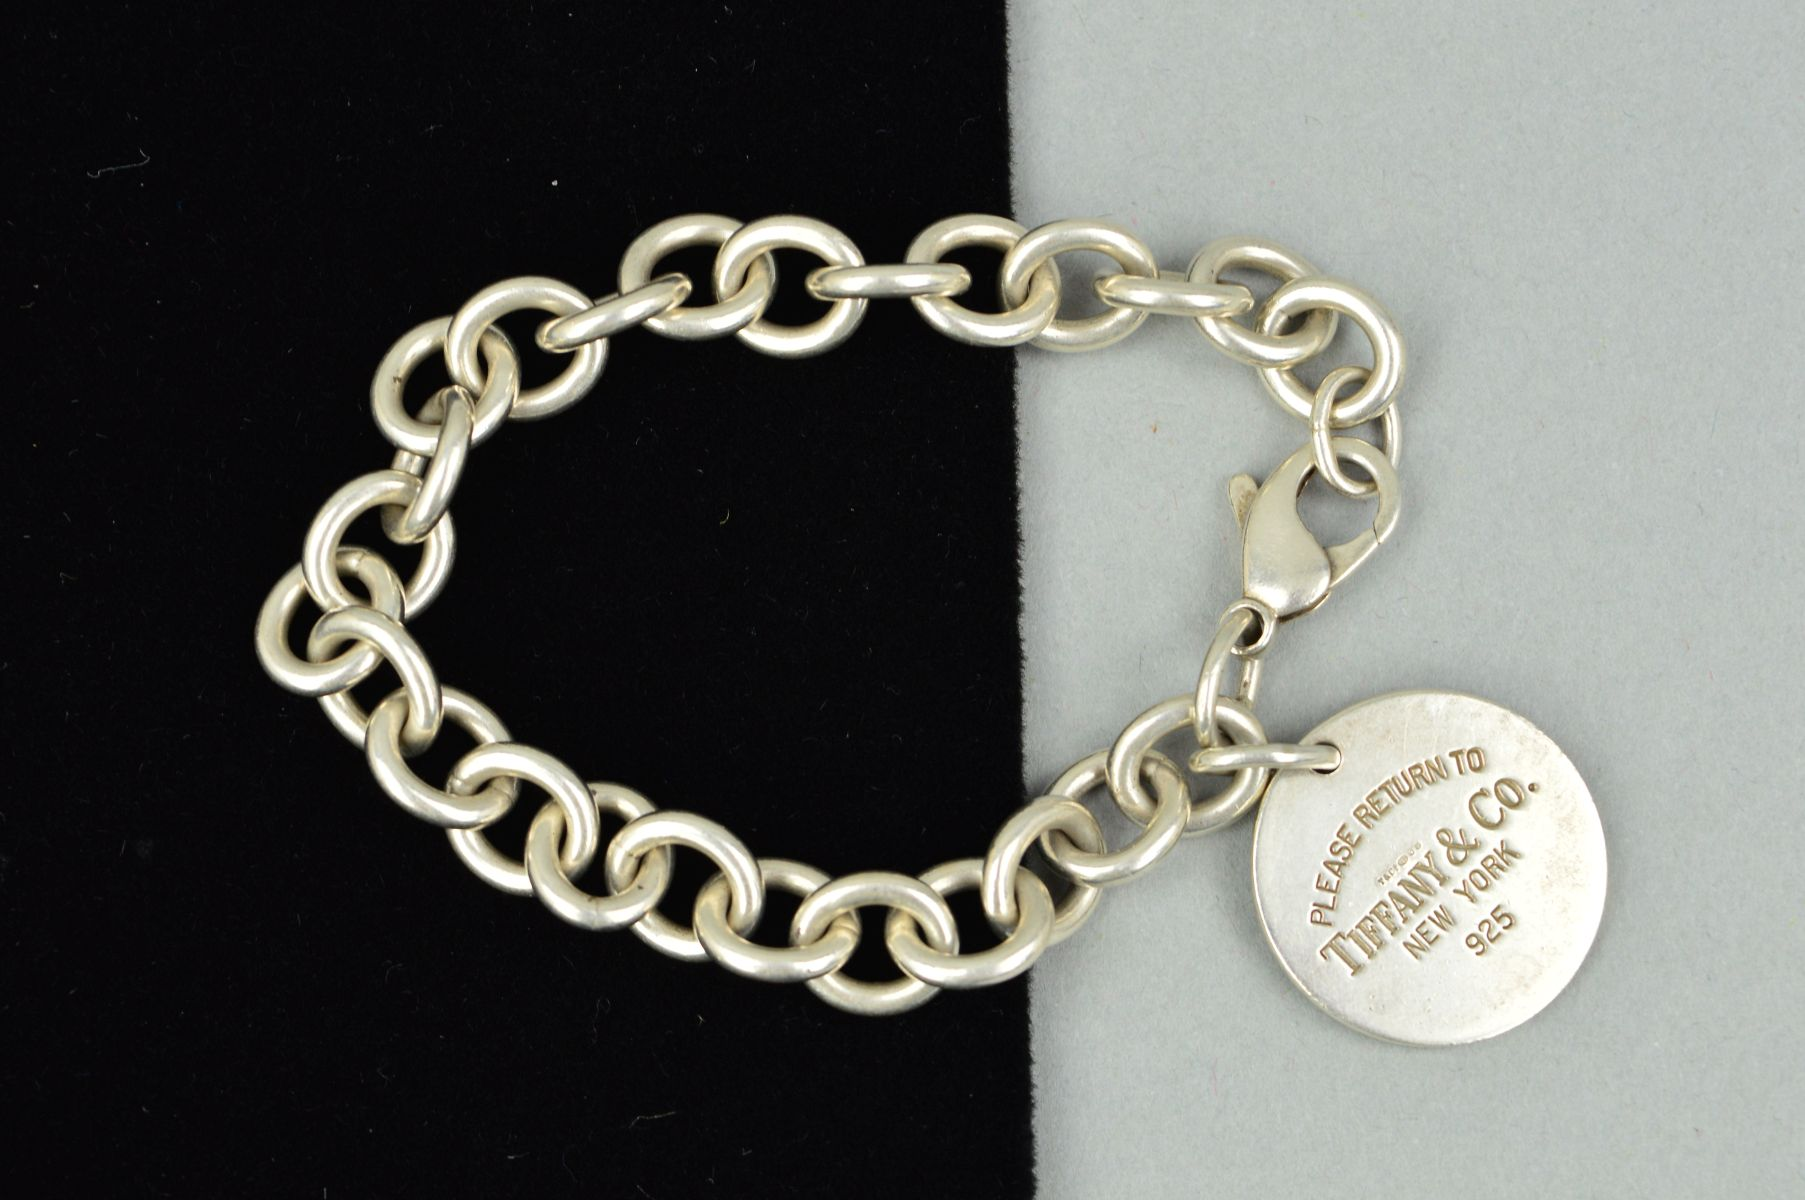 Lot 26 - A TIFFANY & CO. SILVER BRACELET, the belcher link bracelet suspending a circular panel stamped '